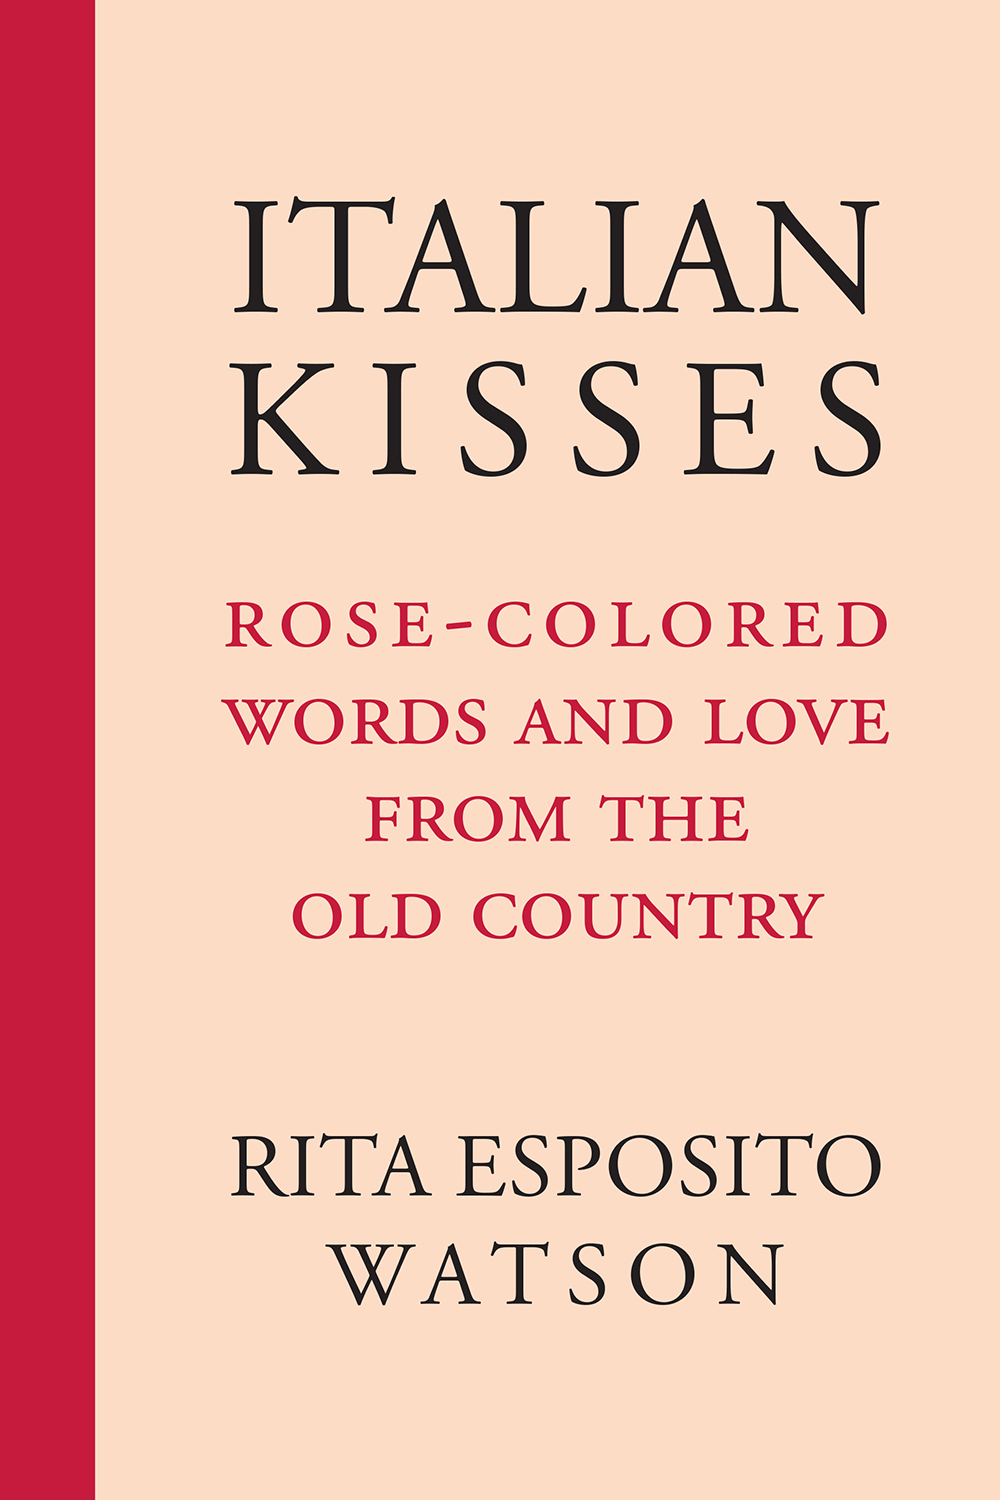 Italian Kisses: Rose-Colored Words and Love from the Old Country